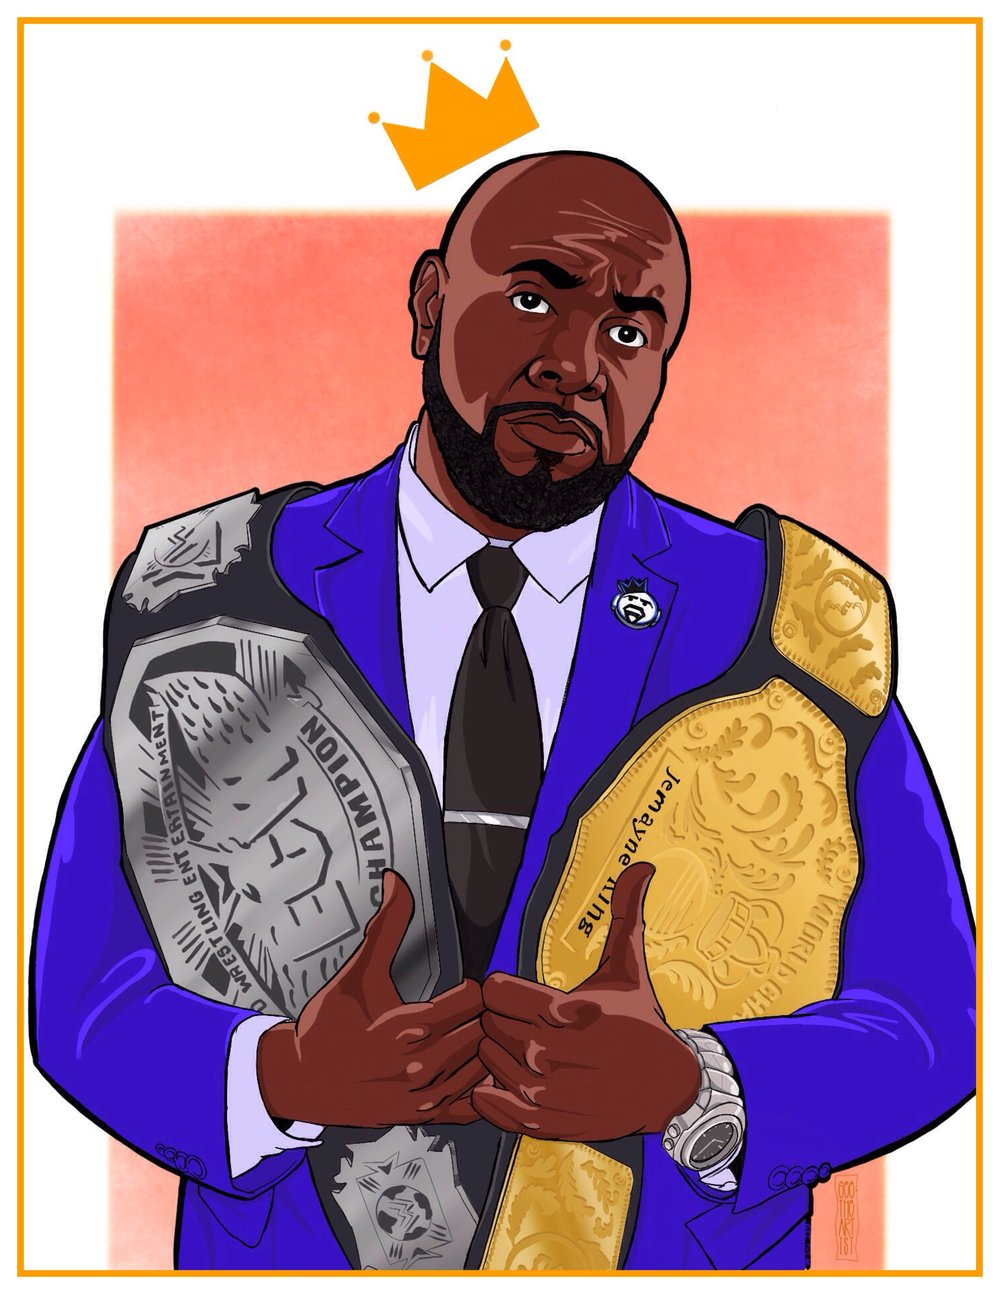 The (double) champ is here! S/O to @GeeTheArtist.